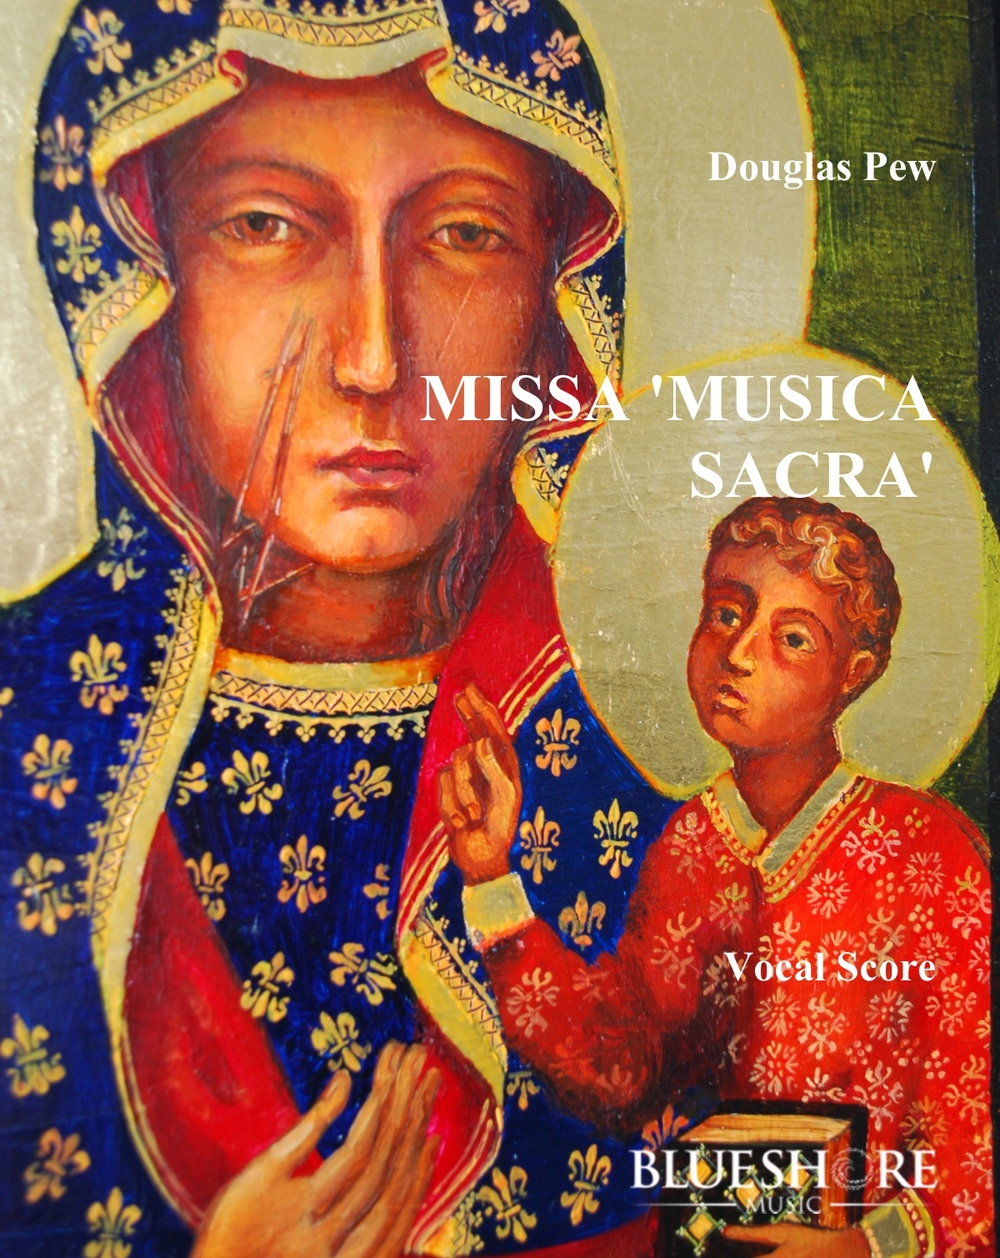 Missa 'Musica Sacra', for Mixed Chorus a cappella